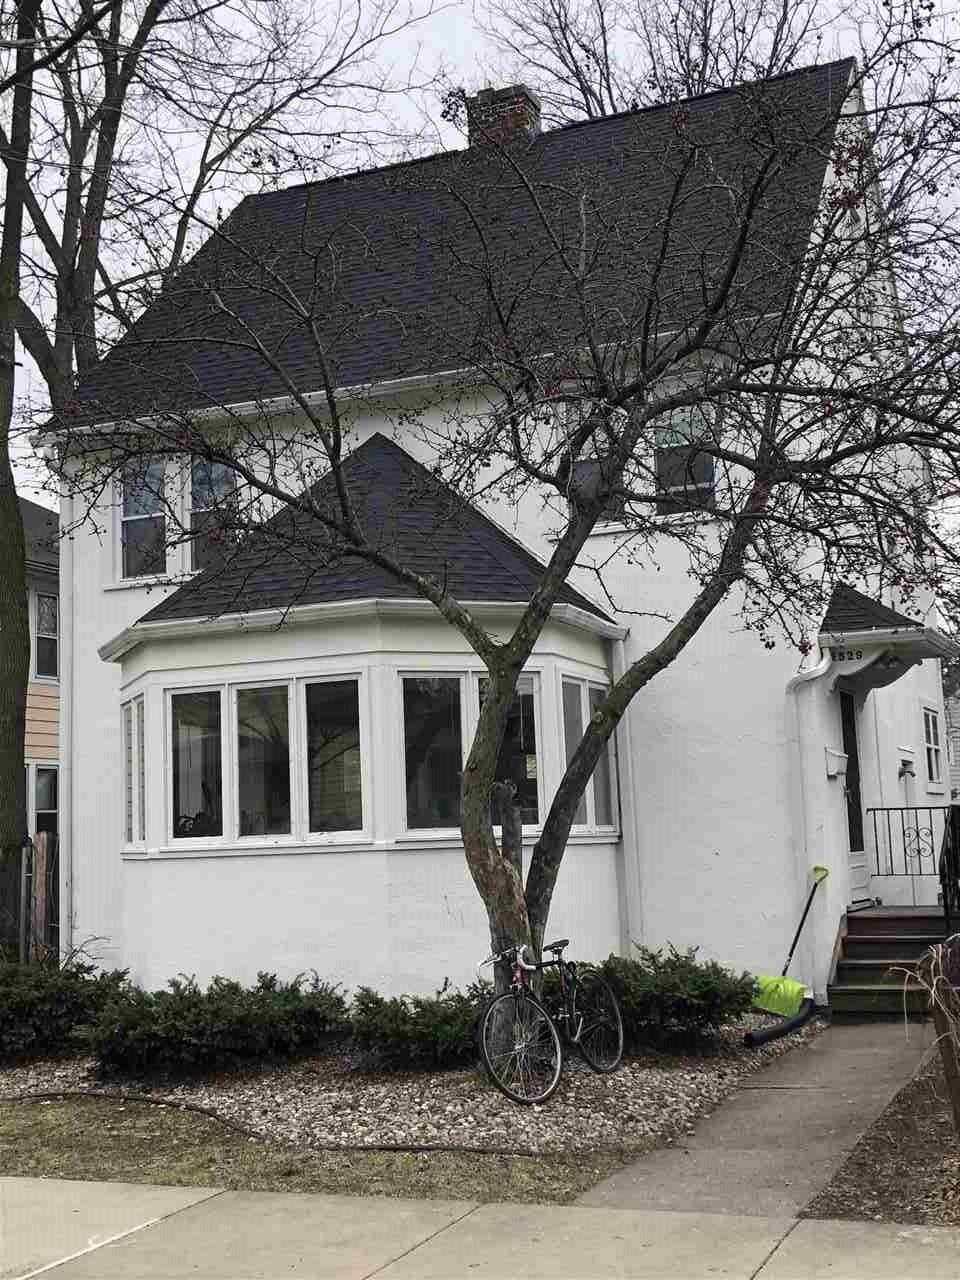 1529 Madison St, MADISON, Wisconsin 53711, 4 Bedrooms Bedrooms, ,1 BathroomBathrooms,Single Family,For Sale,1529 Madison St,2,1903781